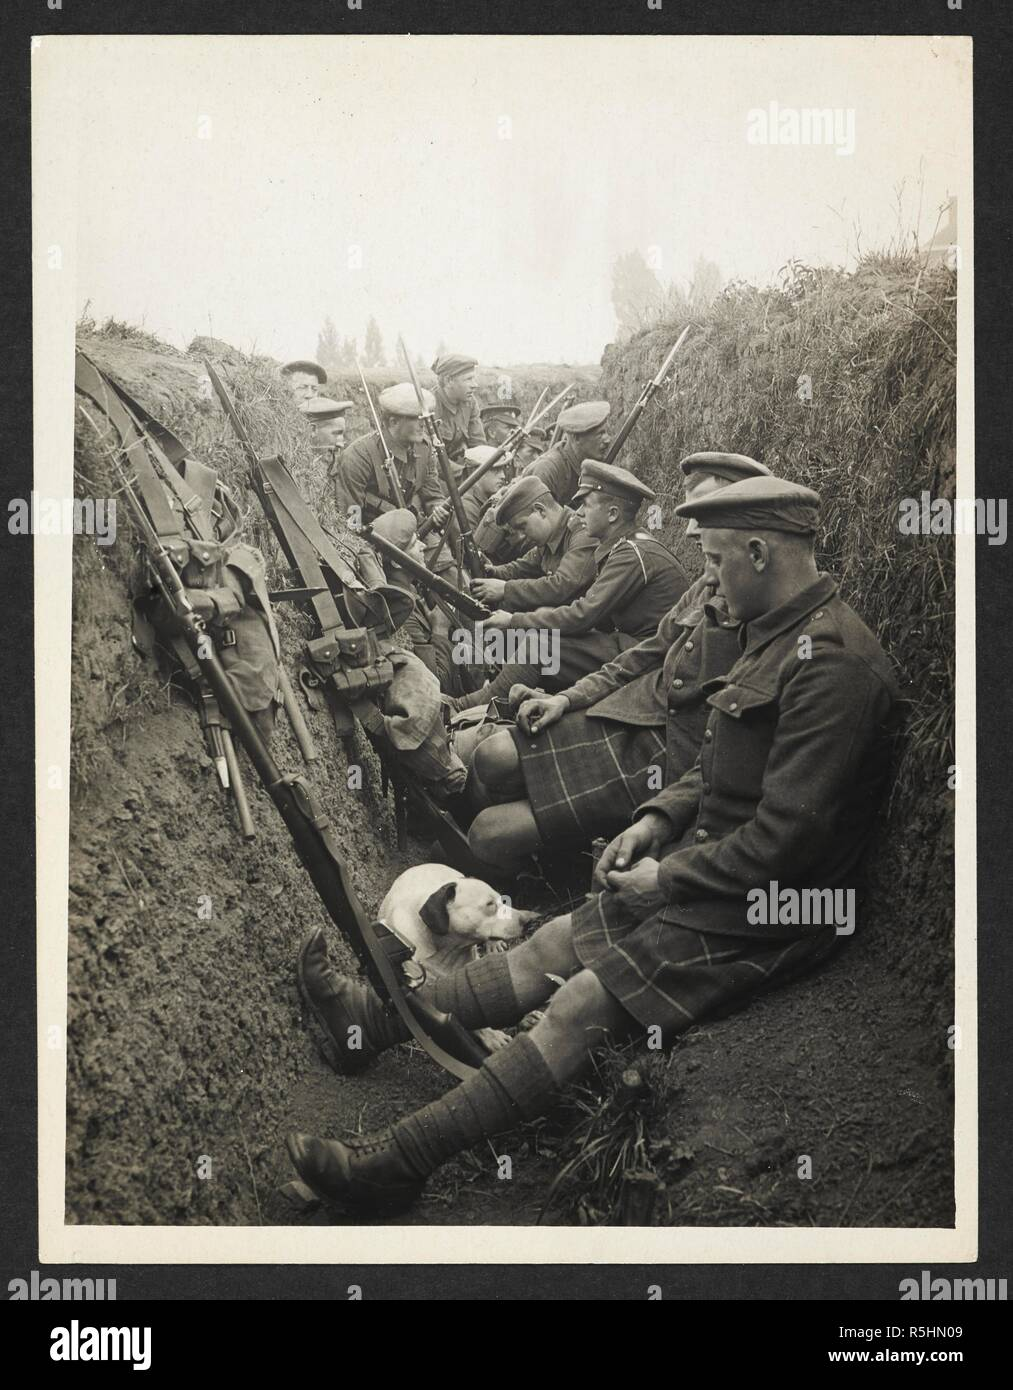 Highland Territorials in a trench [La Gorgue, France]. 5 August 1915. Record of the Indian Army in Europe during the First World War. 20th century, 5 August 1915. Gelatin silver prints. Source: Photo 24/(248). Author: Girdwood, H. D. - Stock Image